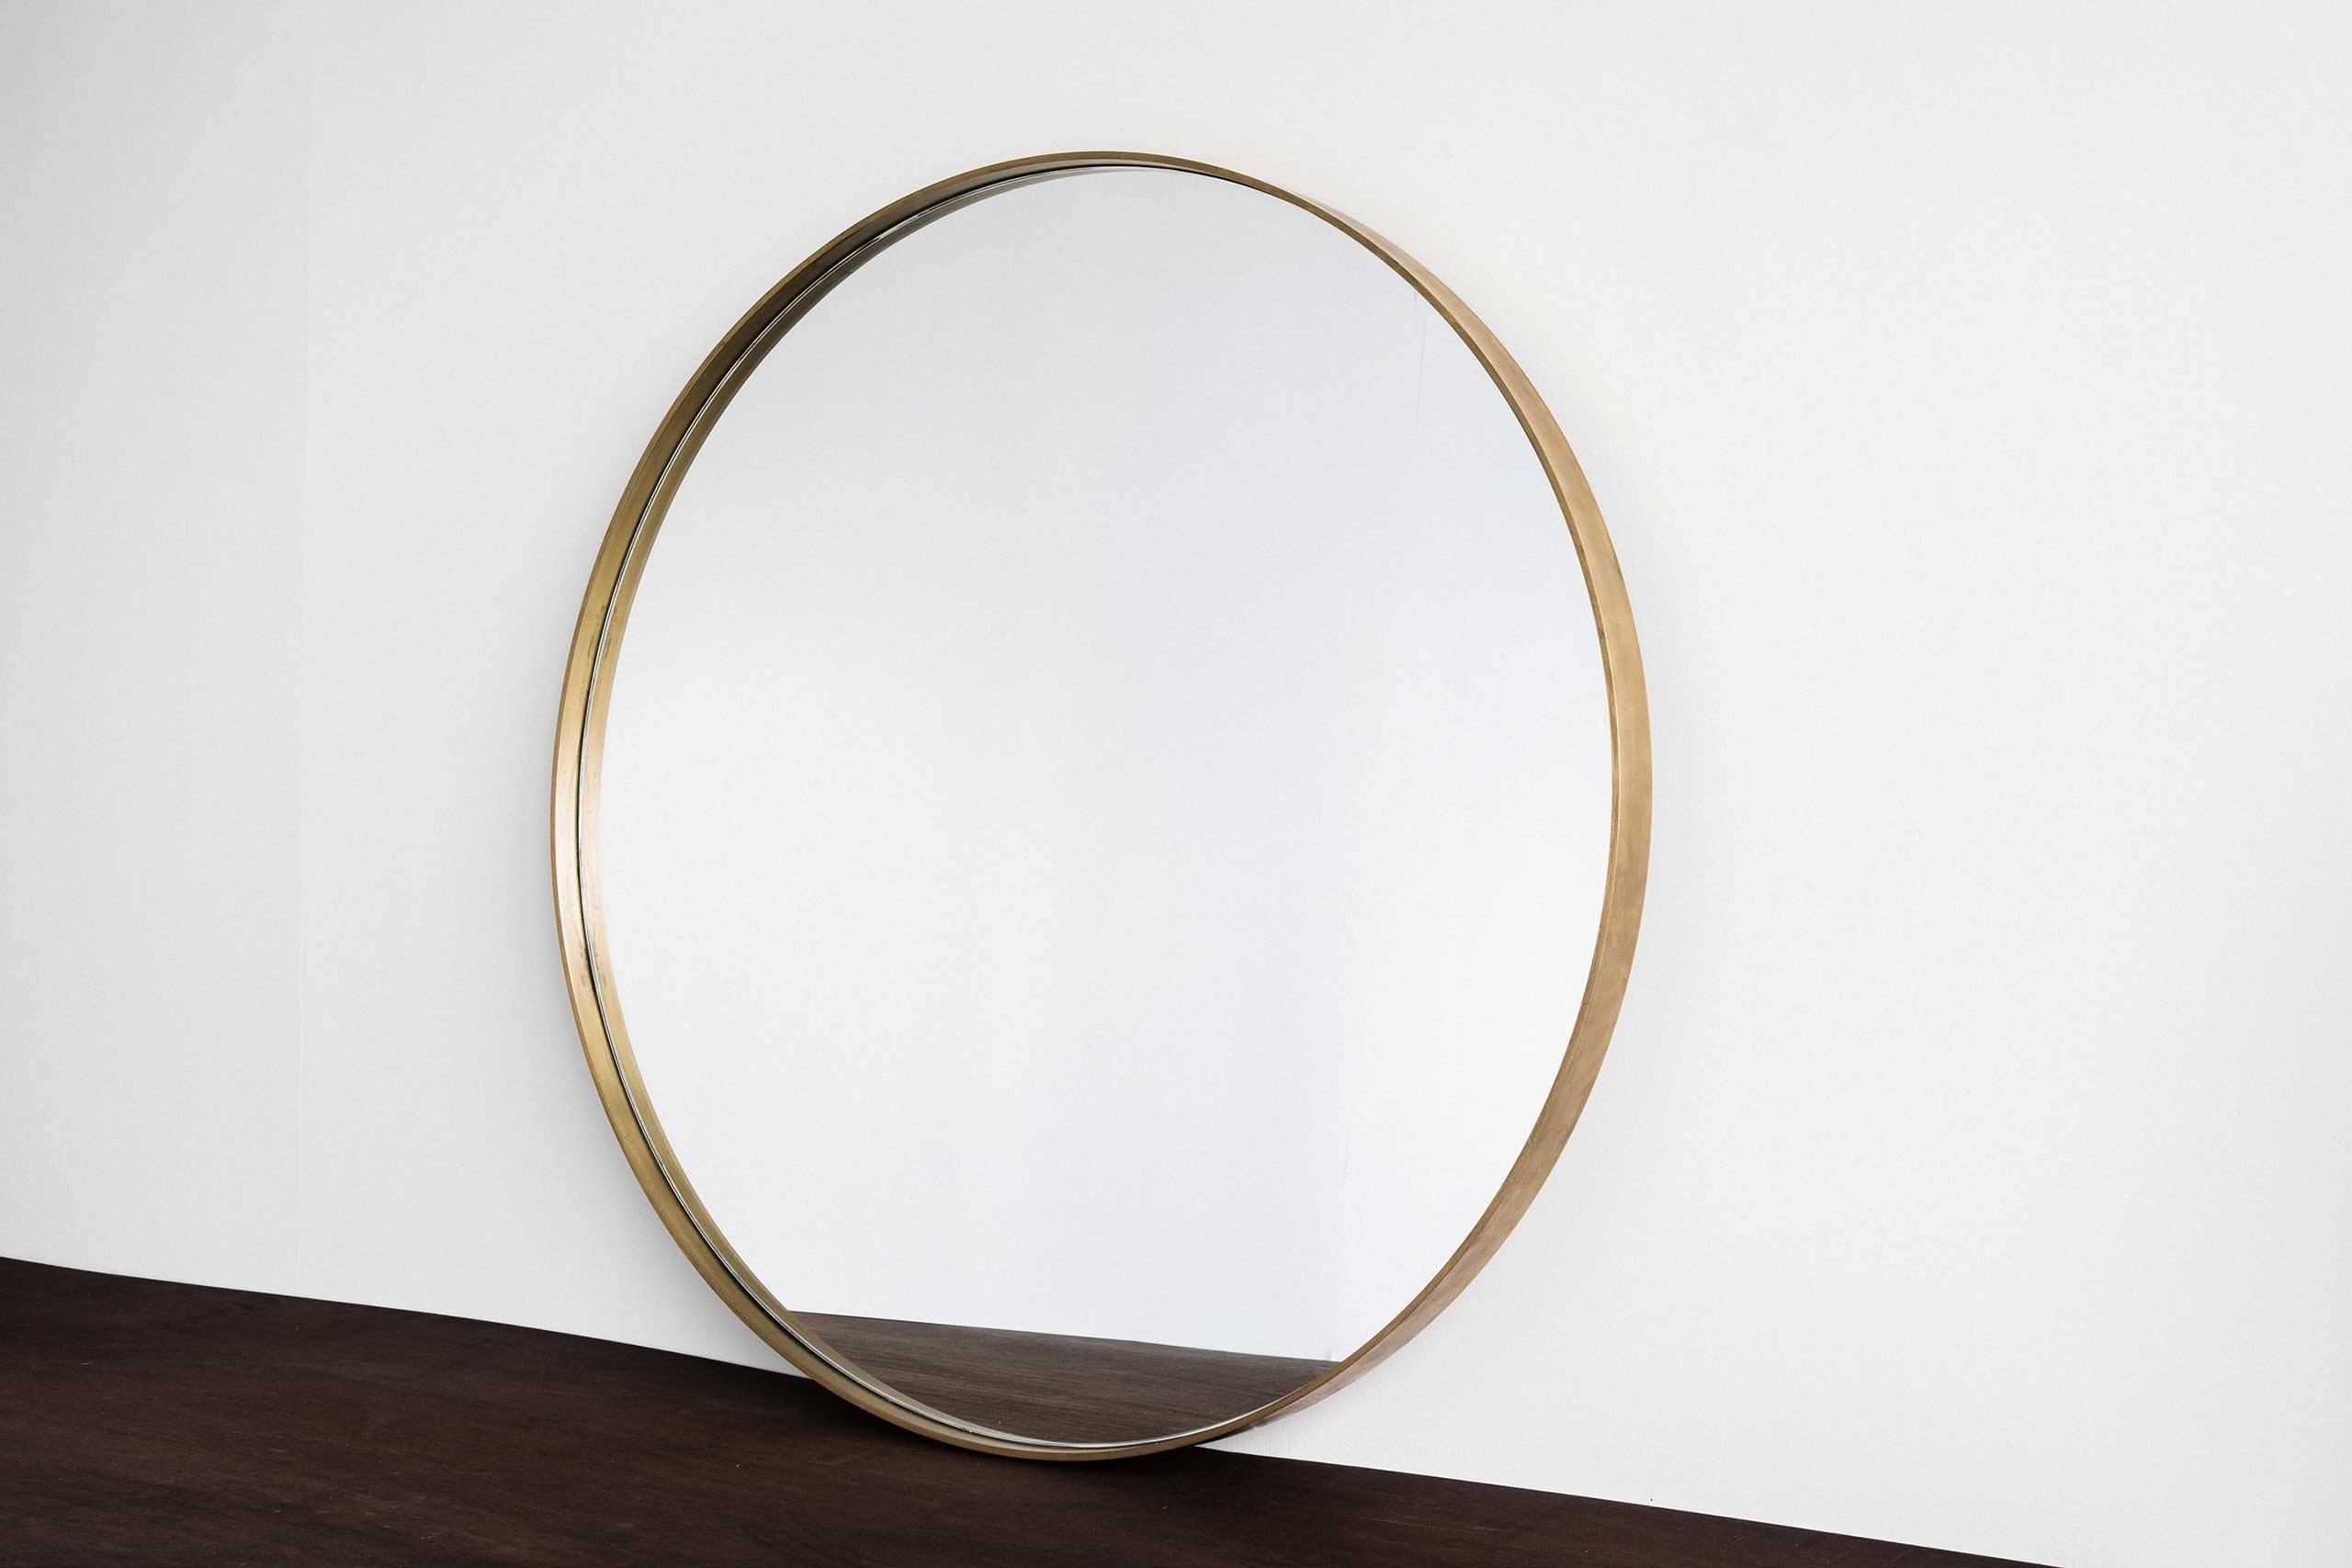 Home Industry | Furniture Designed & Handcrafted In New Zealand. ©2016 regarding Brass Mirrors (Image 10 of 15)